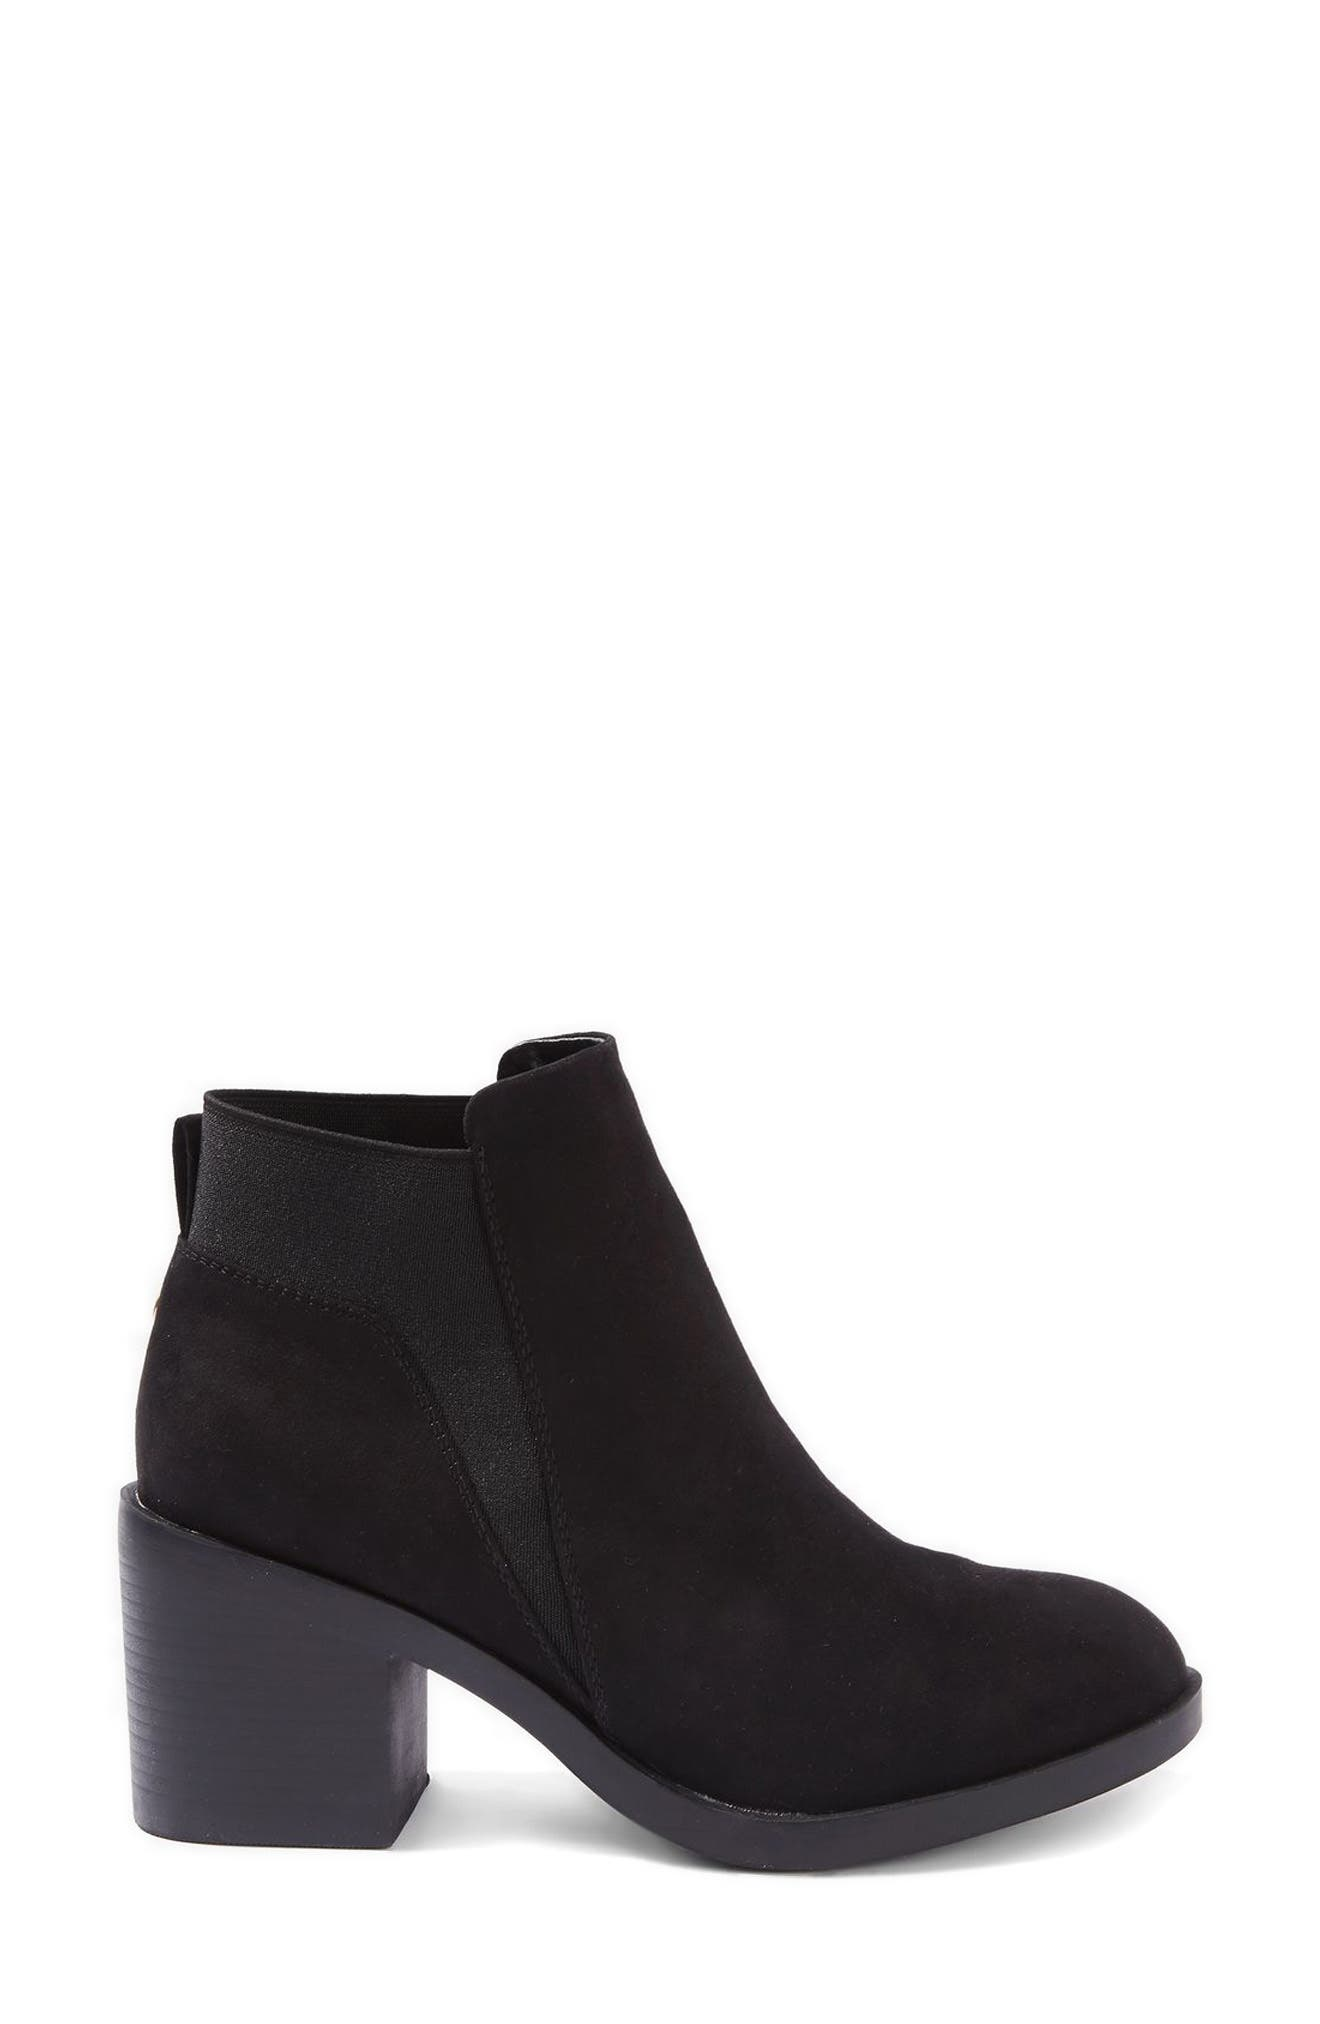 Buddy Block Heel Bootie,                             Alternate thumbnail 2, color,                             Black